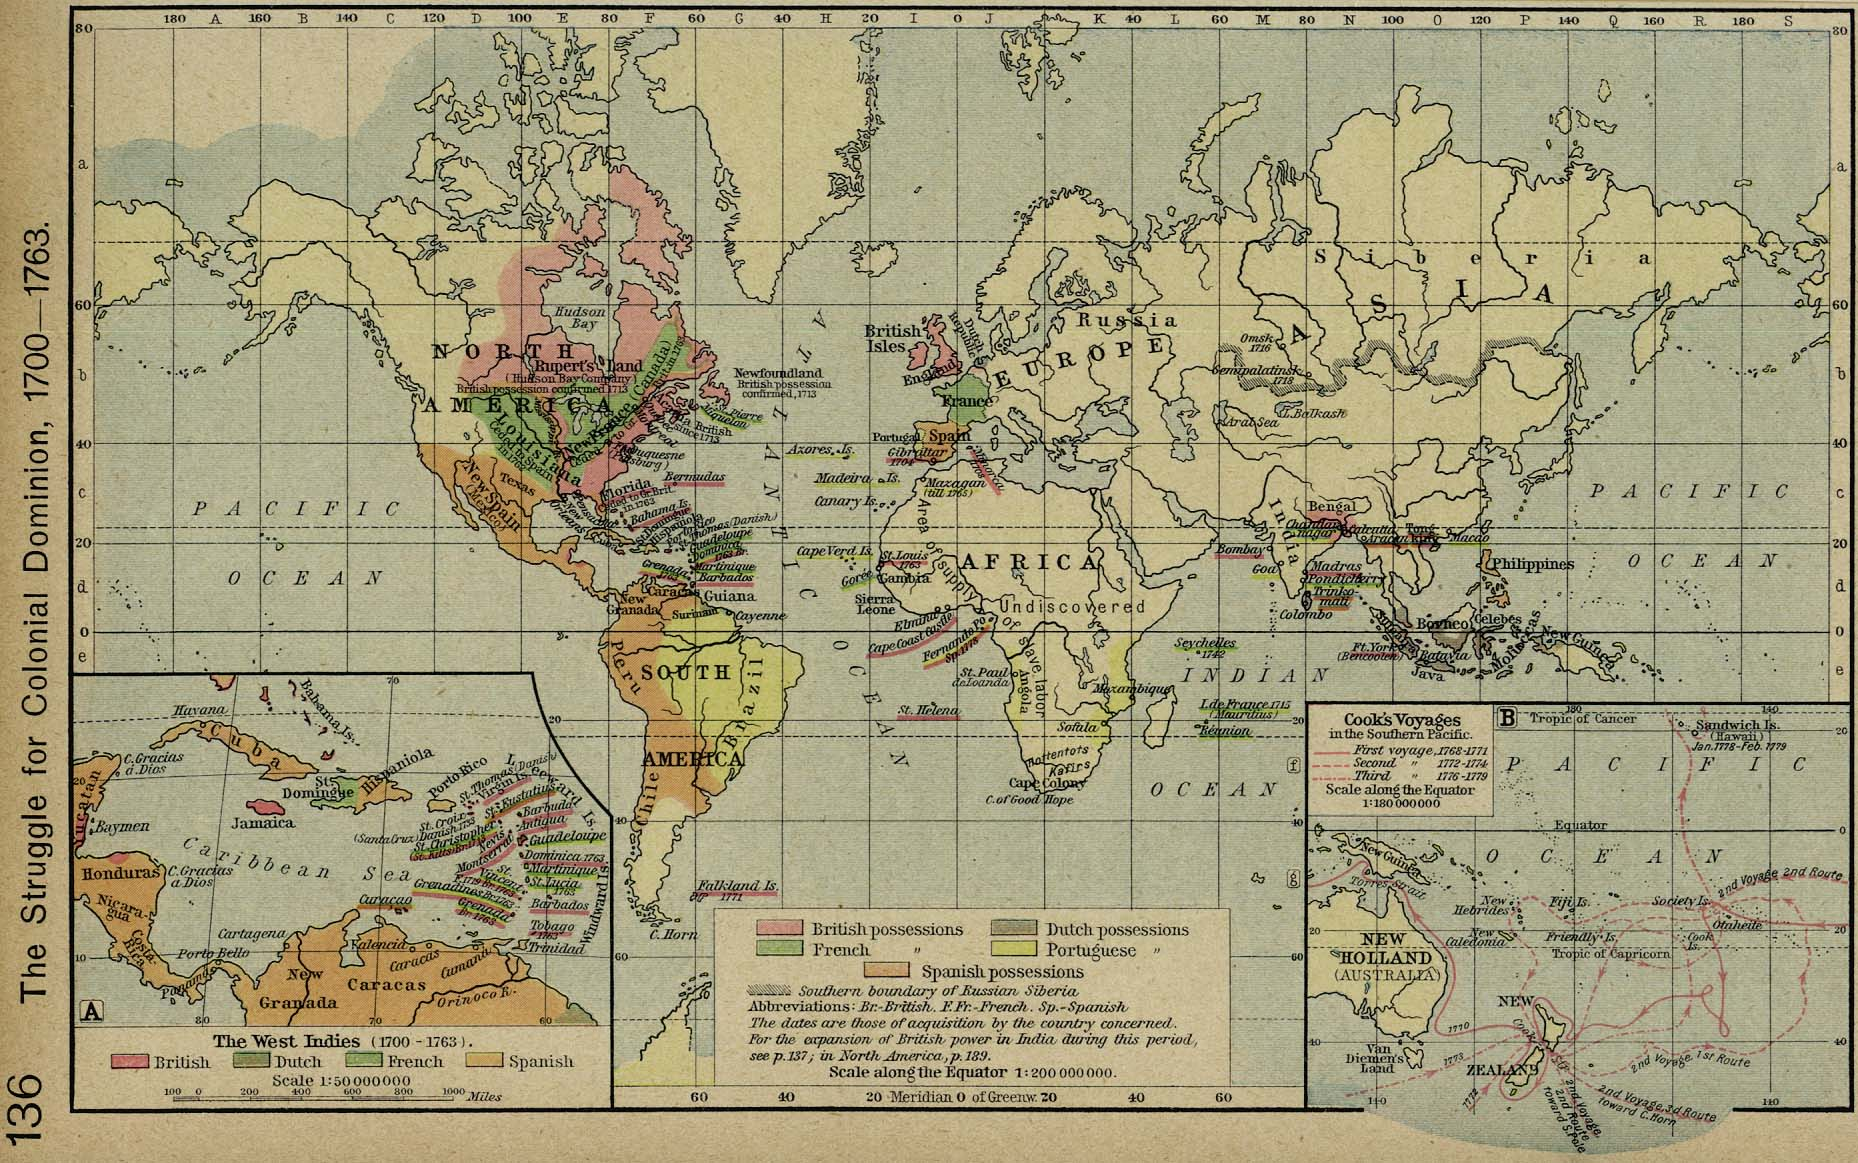 World Map 1700-1763: Colonies